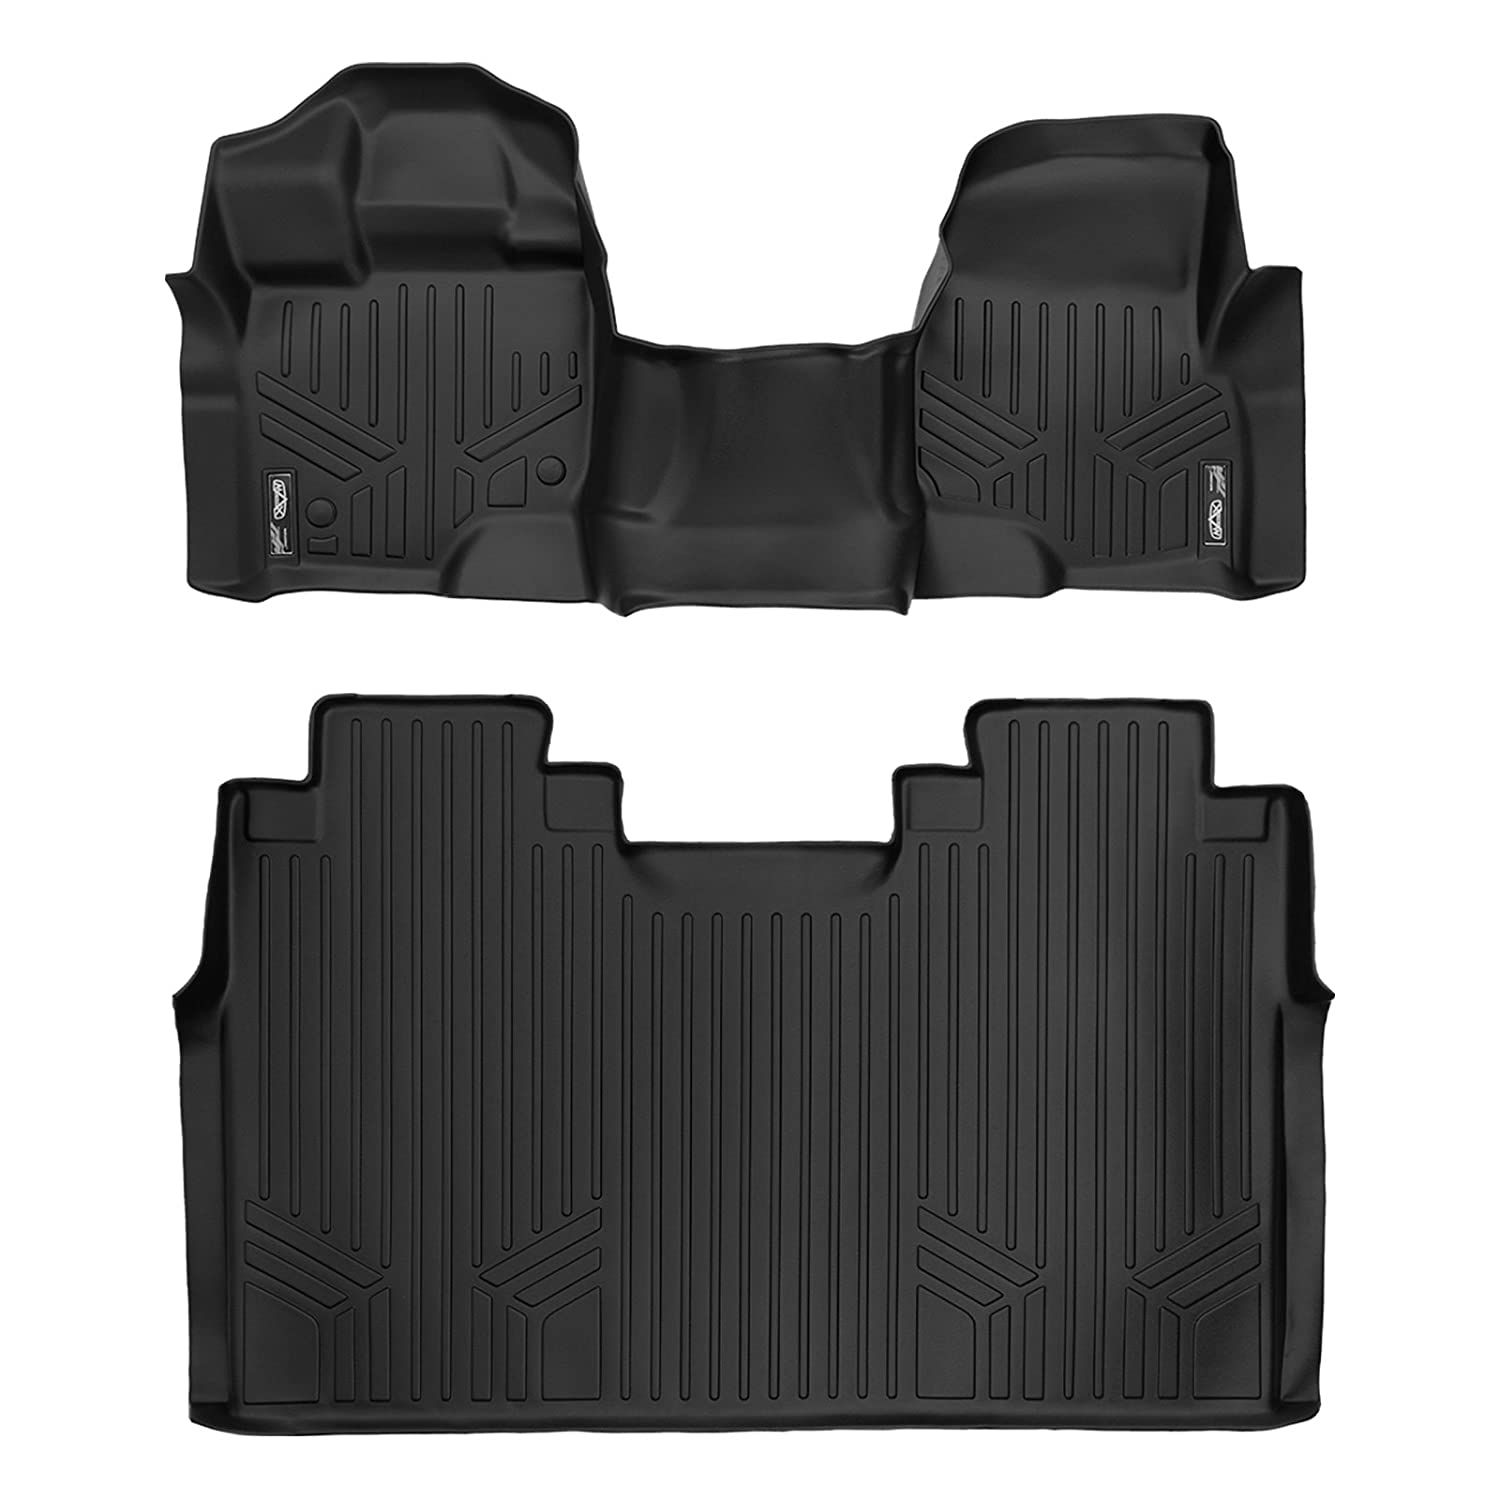 SMARTLINER Floor Mats 2 Row Liner Set Black for 20152018